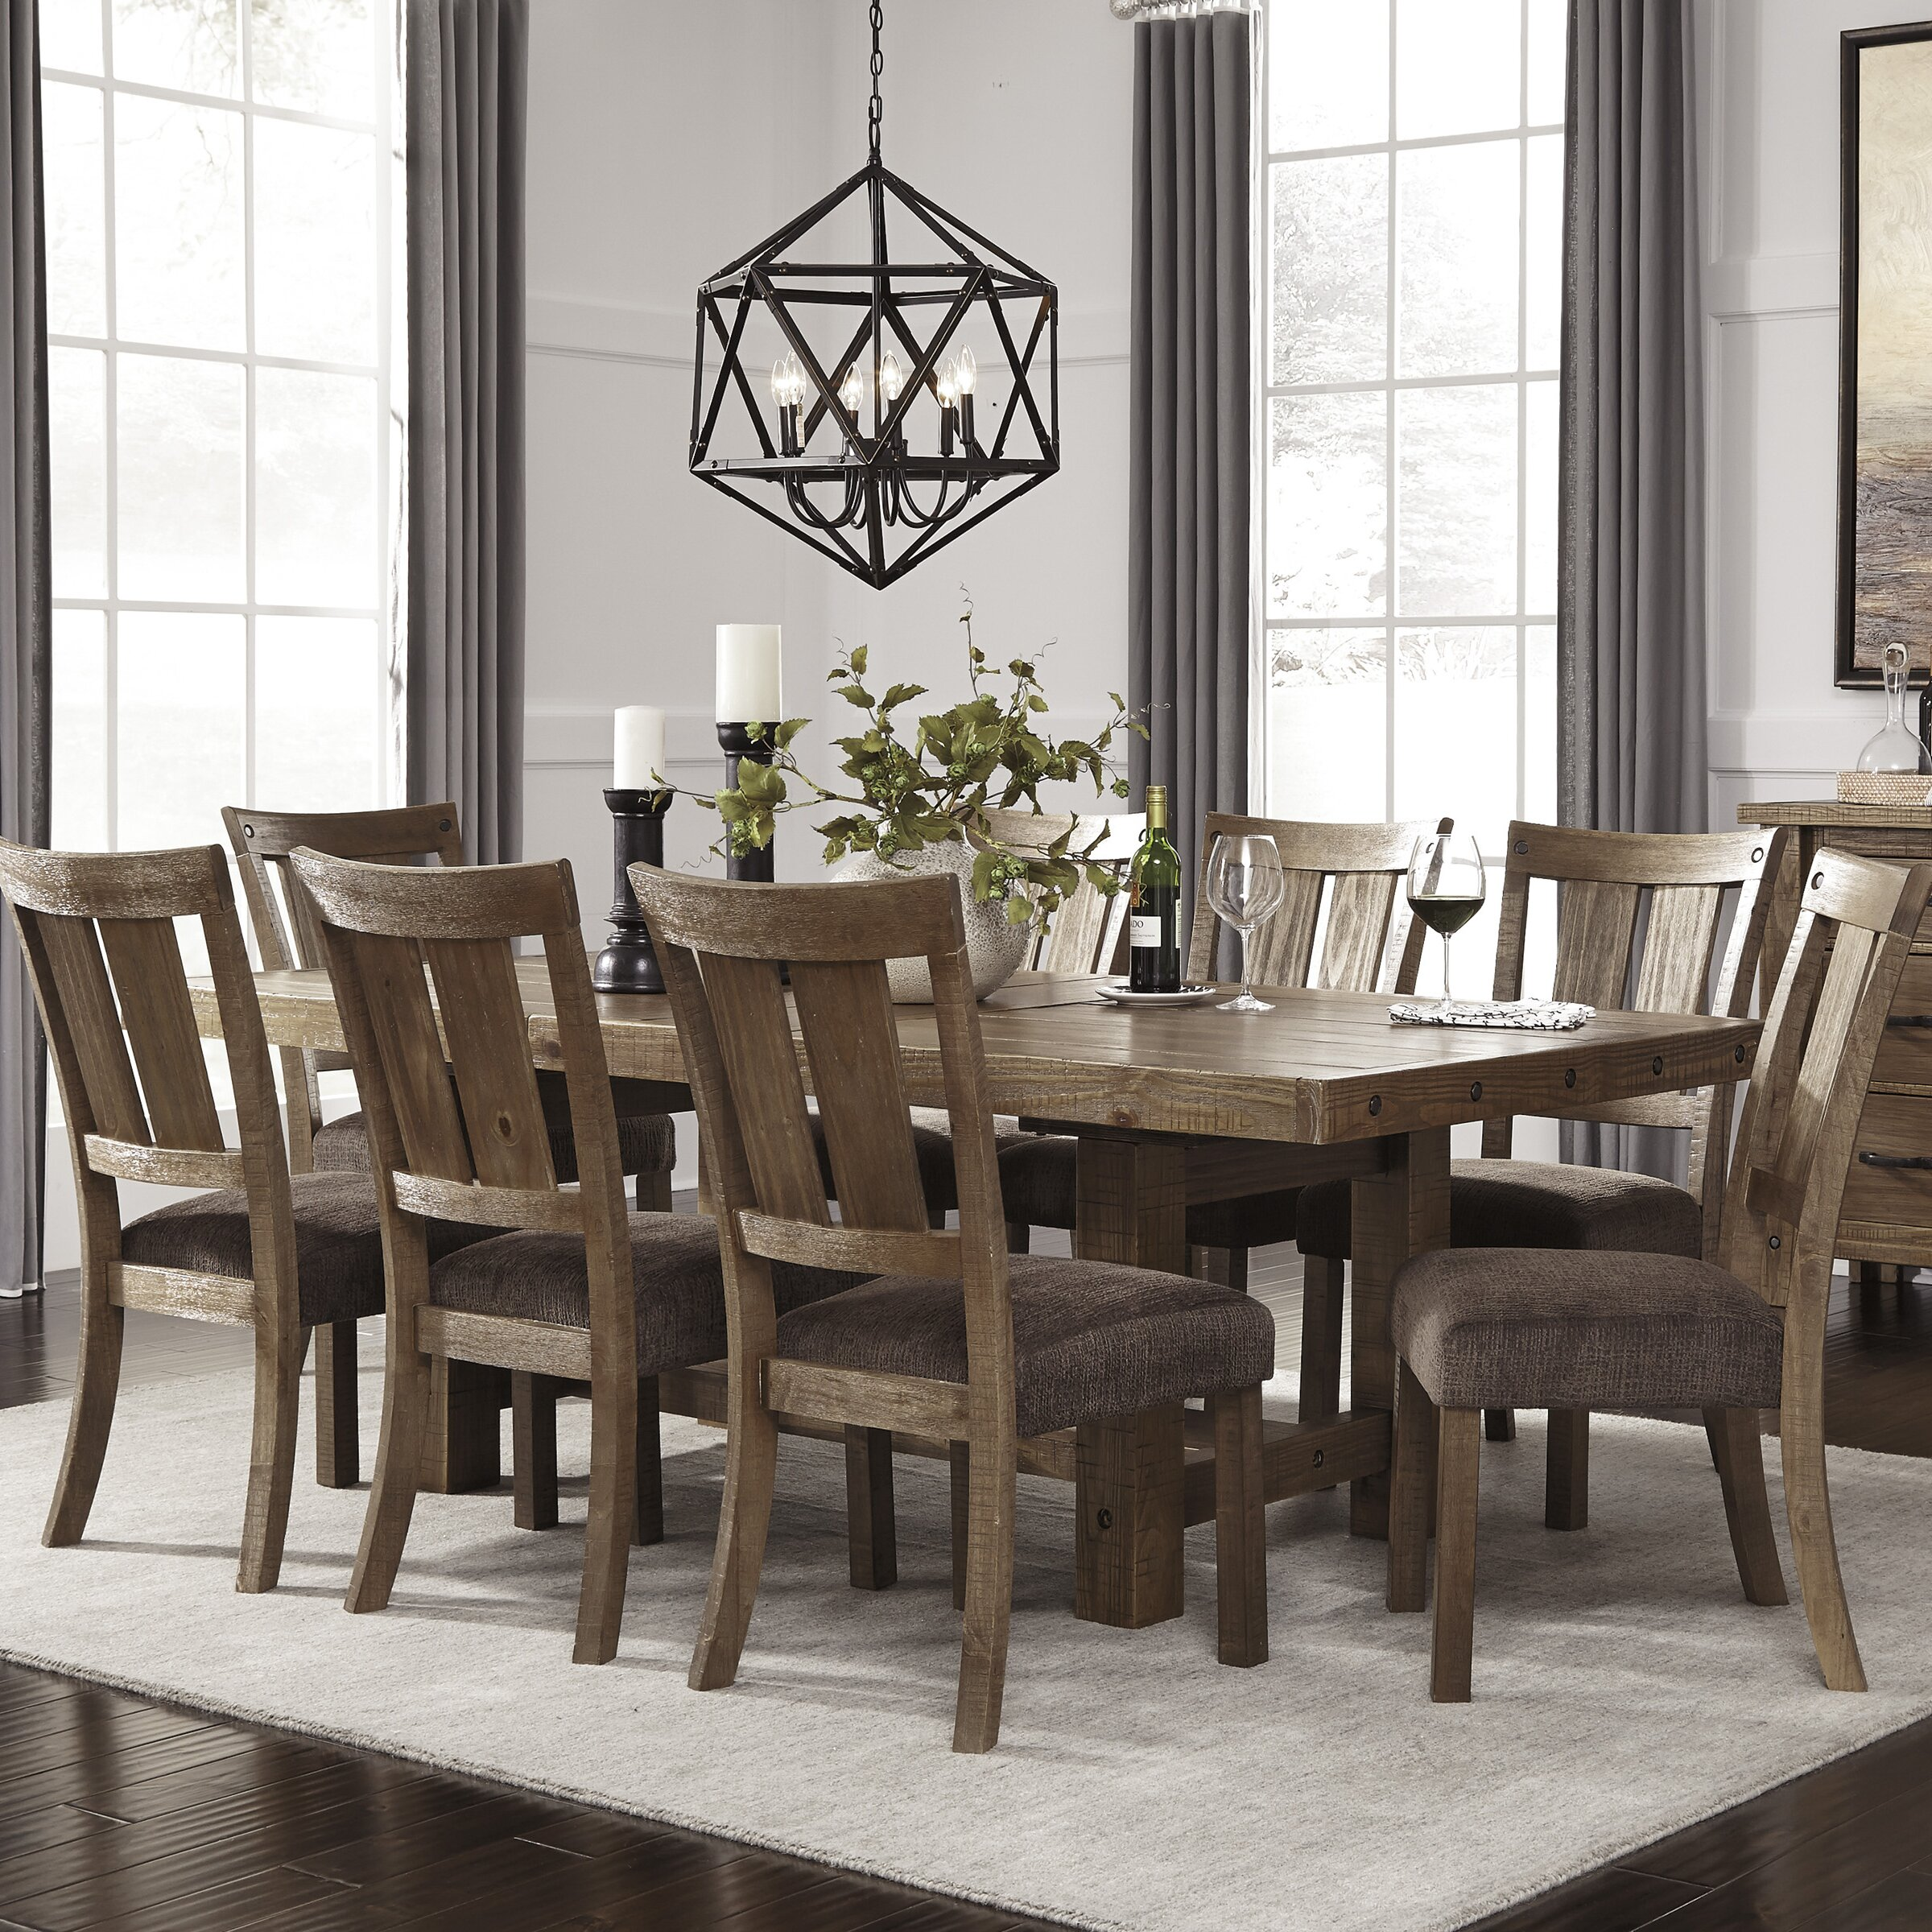 Signature design by ashley 9 piece dining set reviews for Farmhouse style dining set